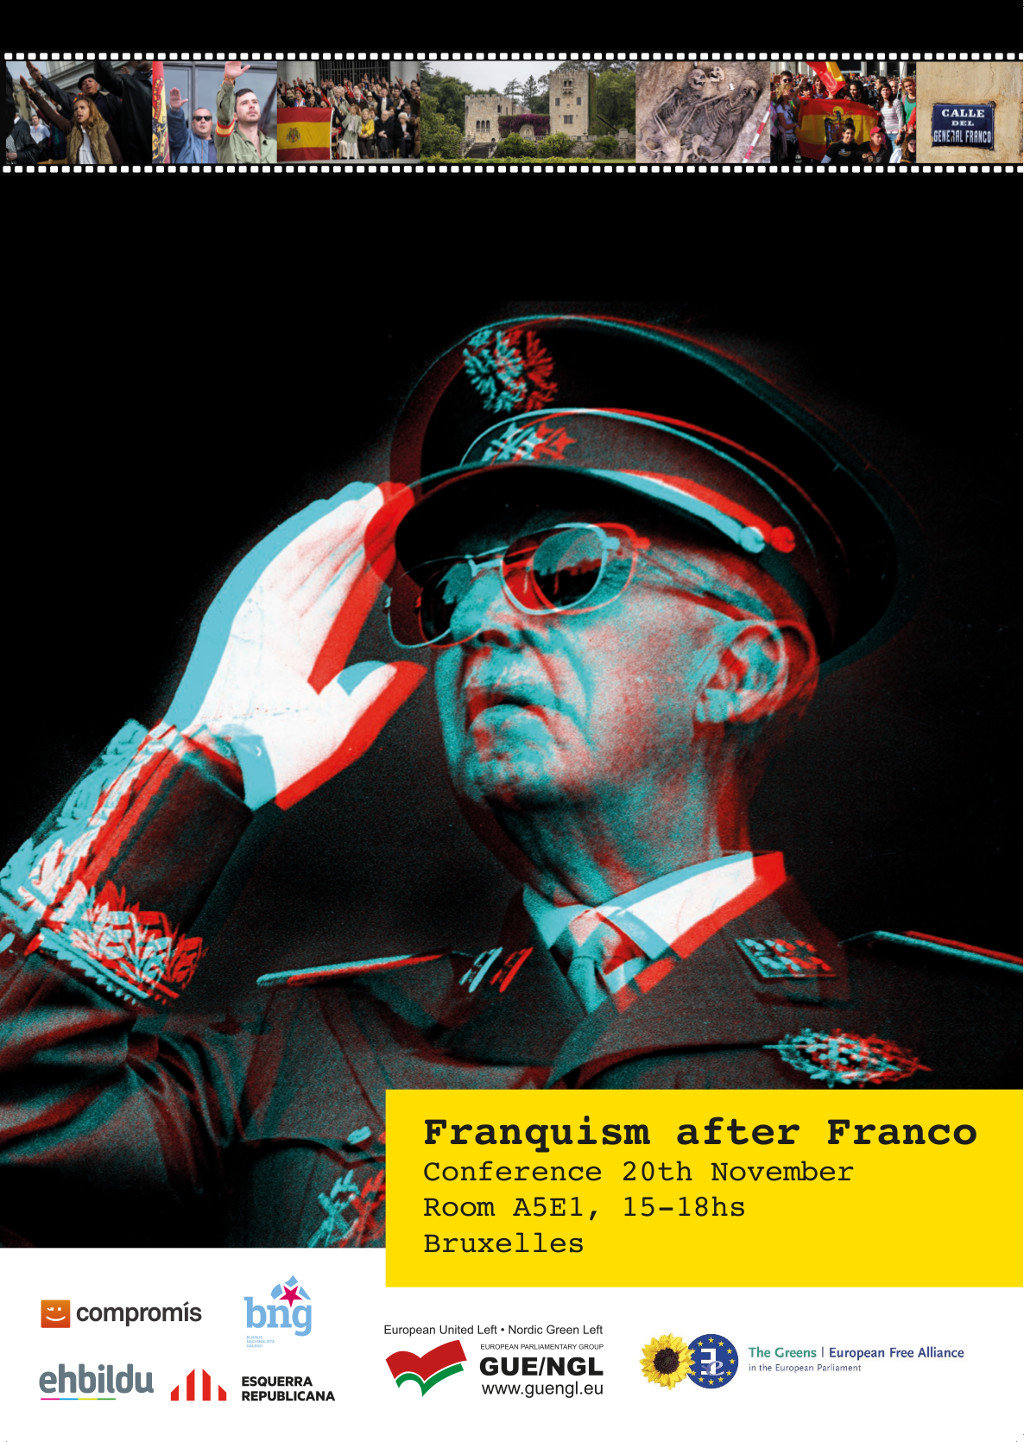 franquismo after Franco